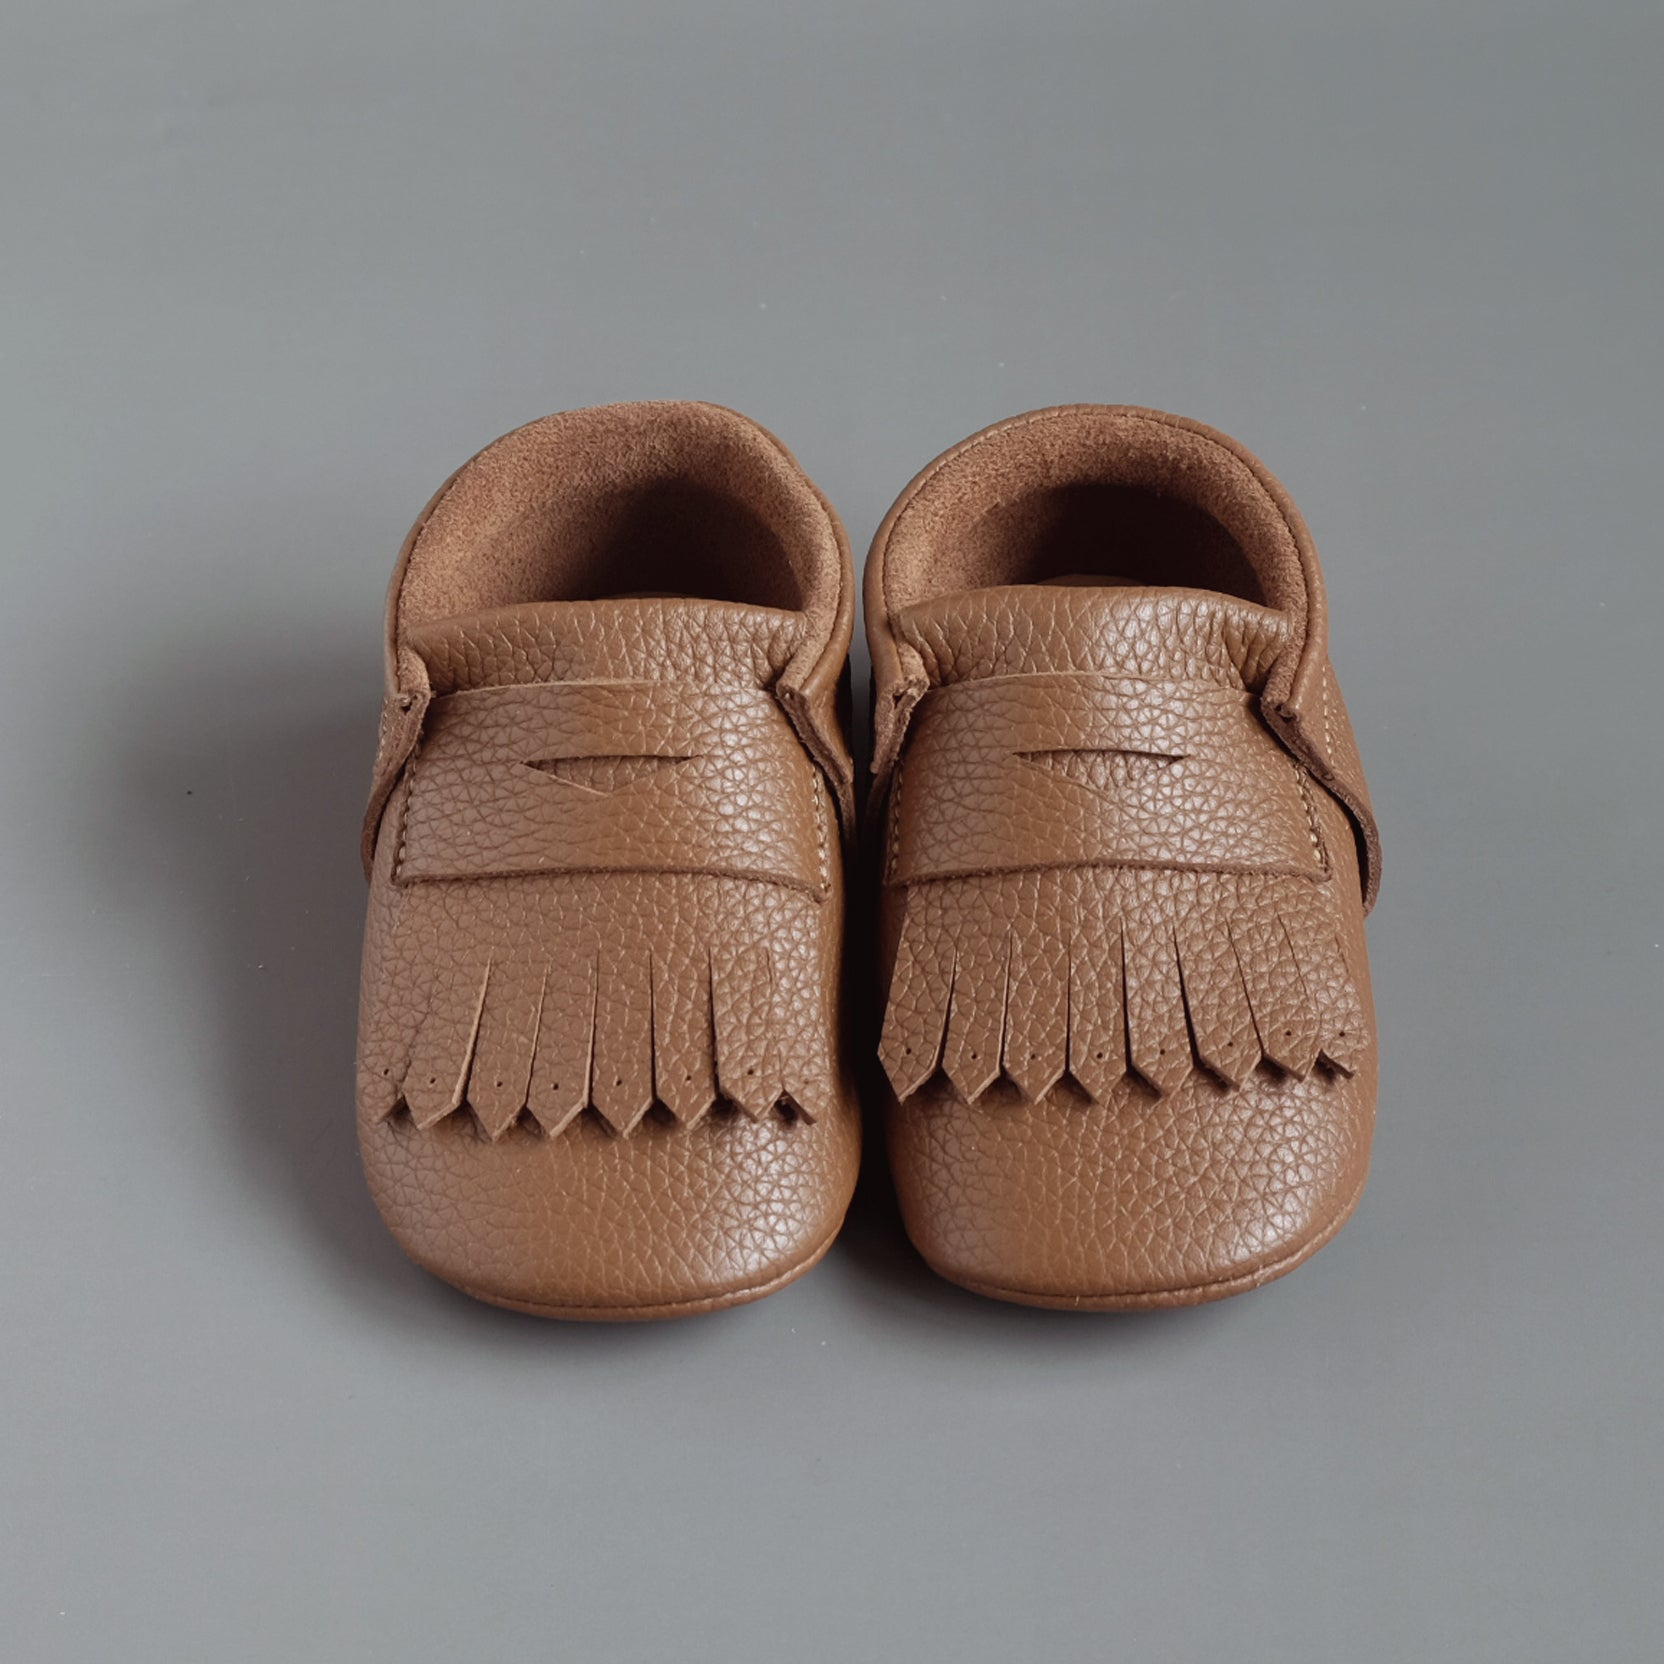 Tiera Moccasin in Pretzel